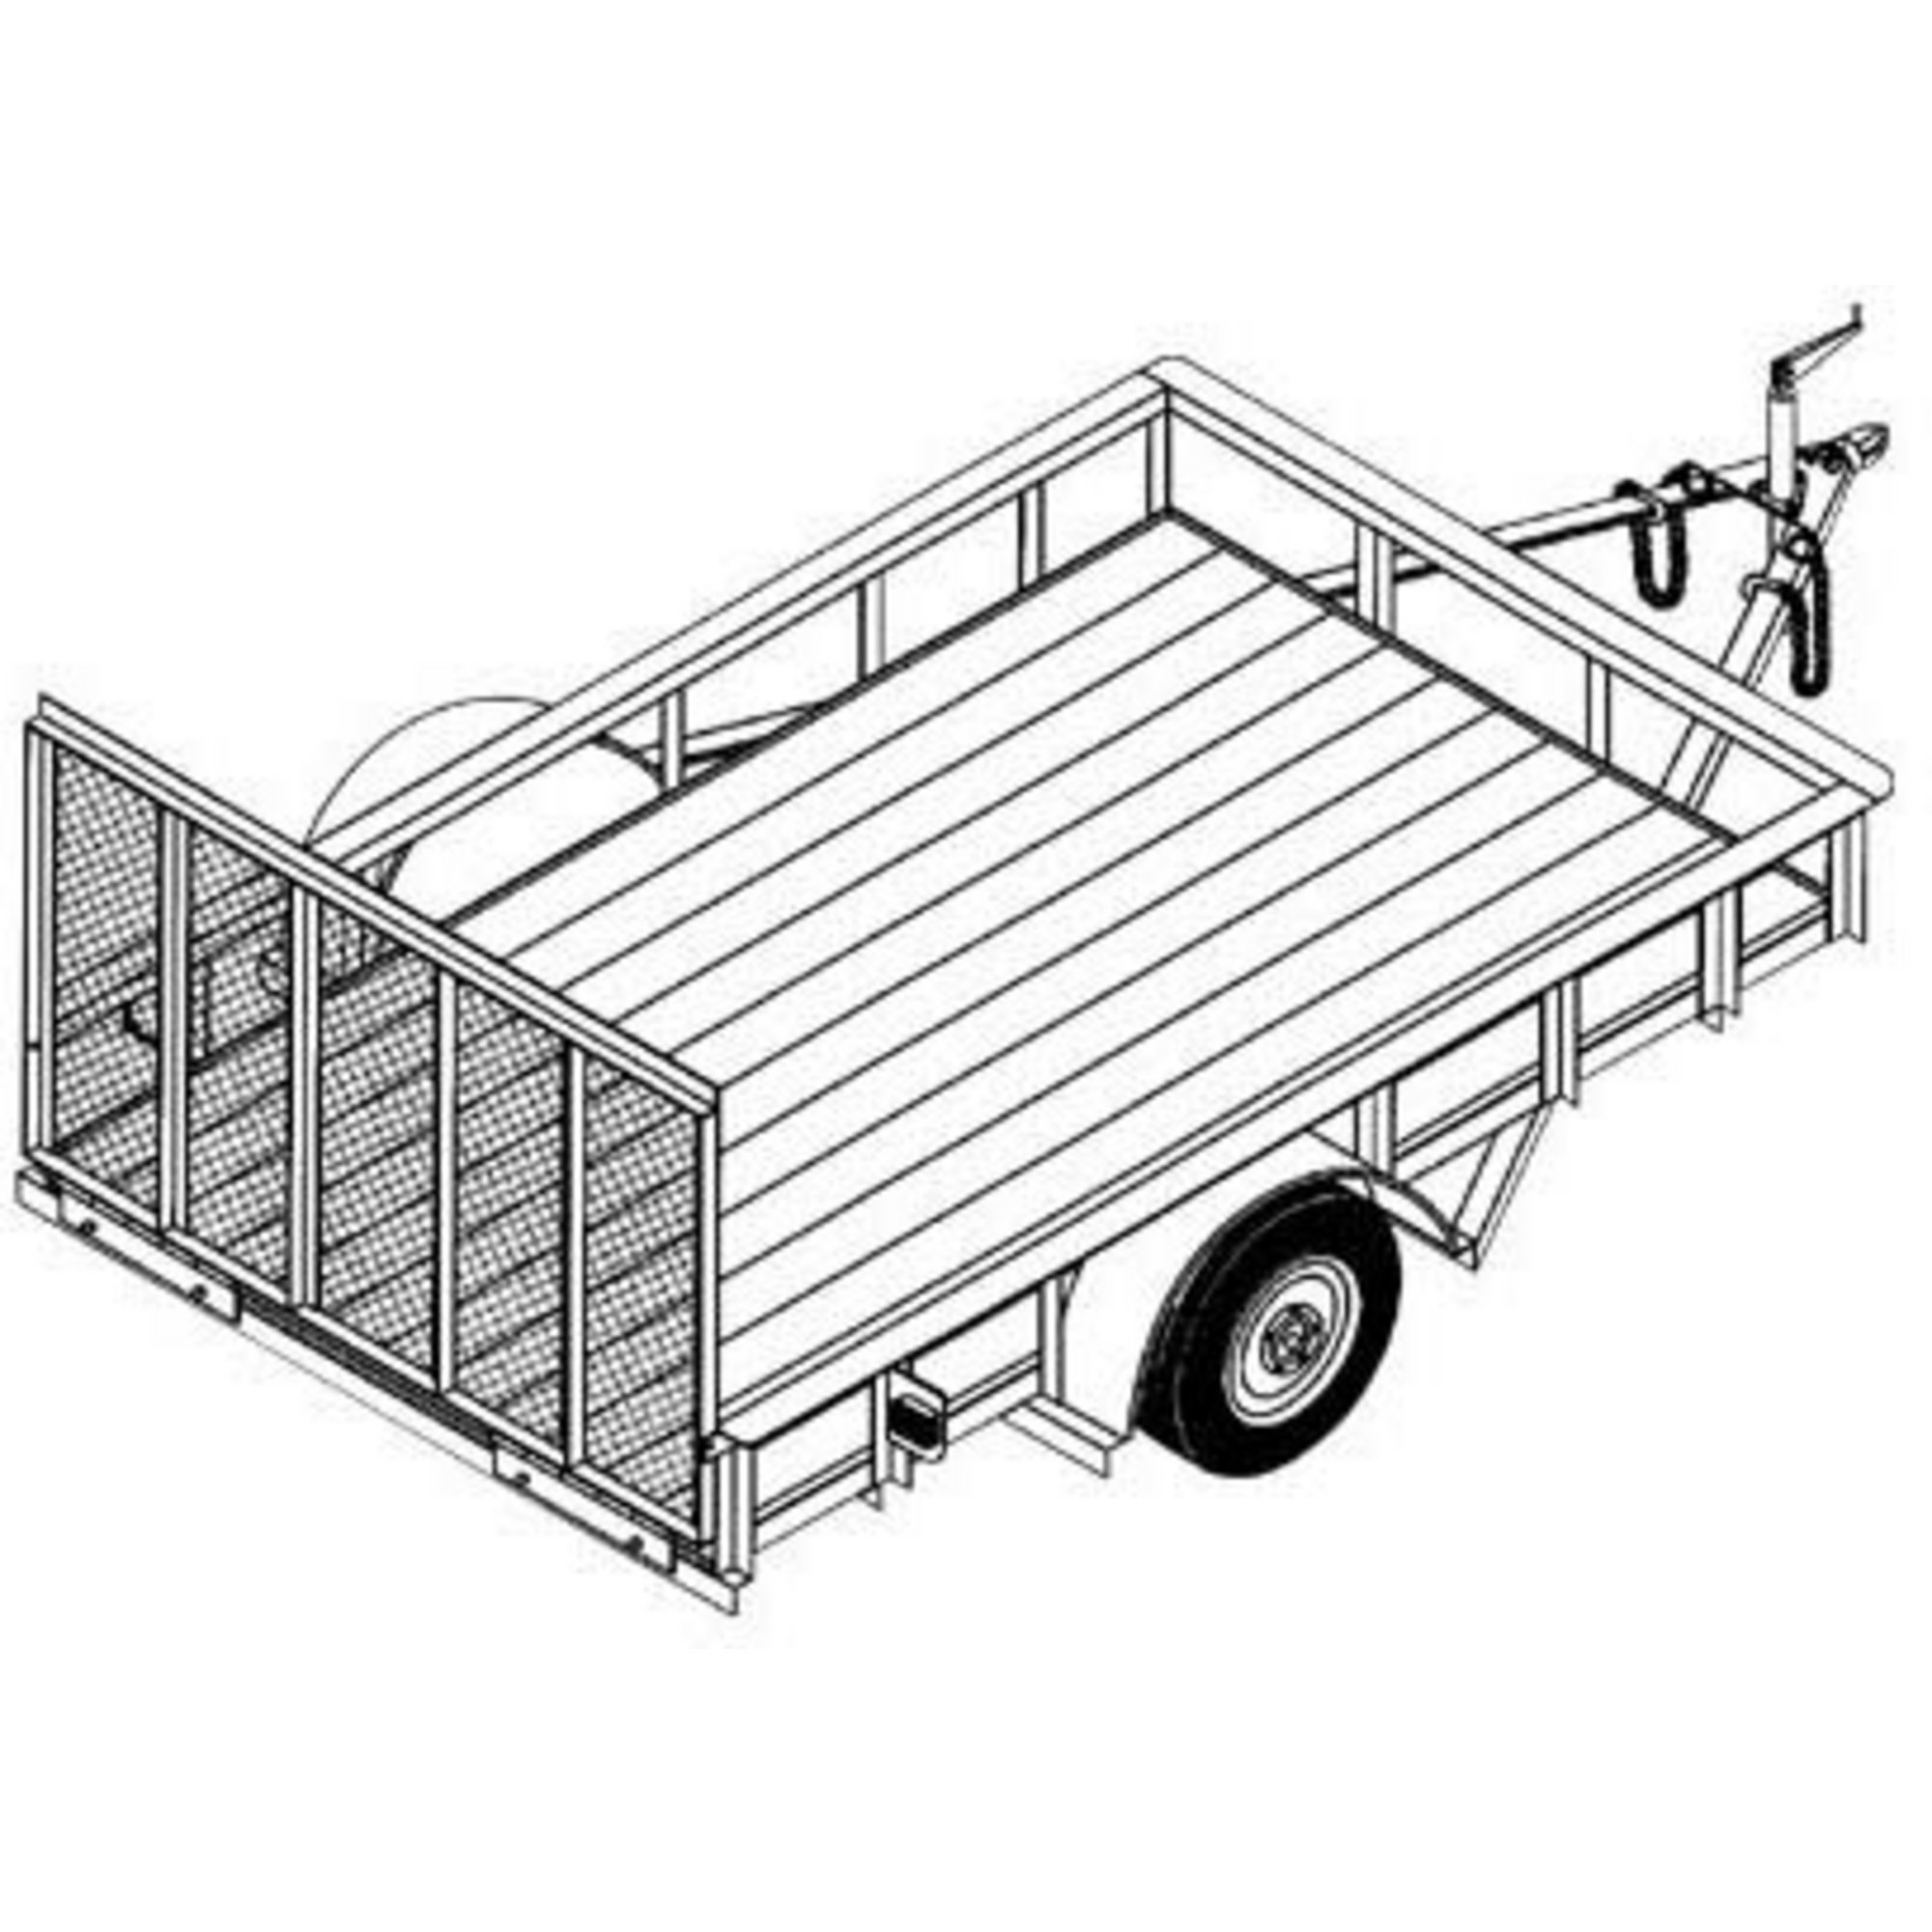 2000x2000 Utility Trailer Blueprints Northern Tool + Equipment